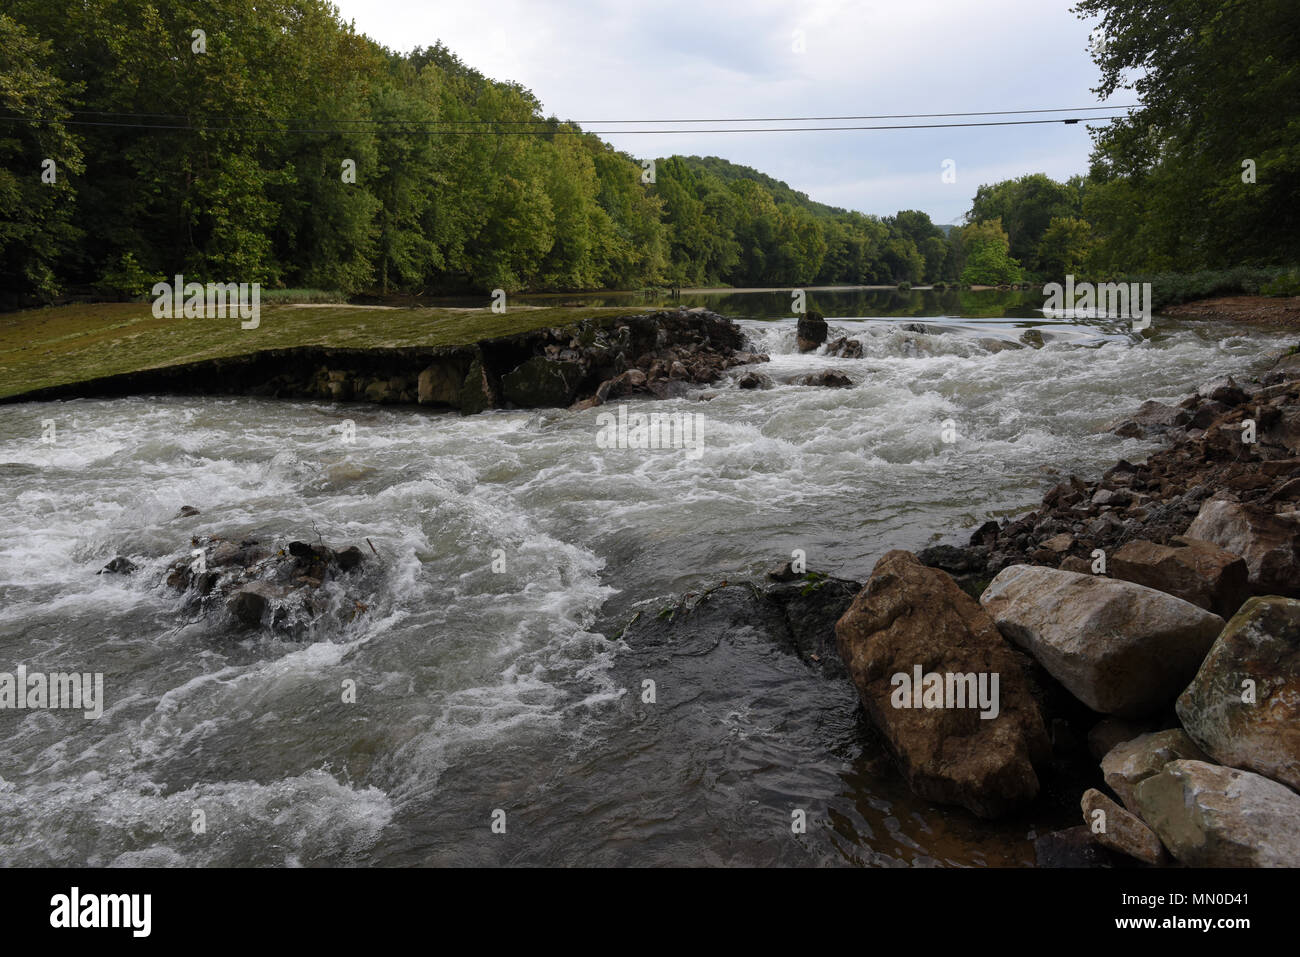 What Is A Low Head Dam - Low Head Dam High Resolution Stock Photography And Images Alamy : We did not find results for: